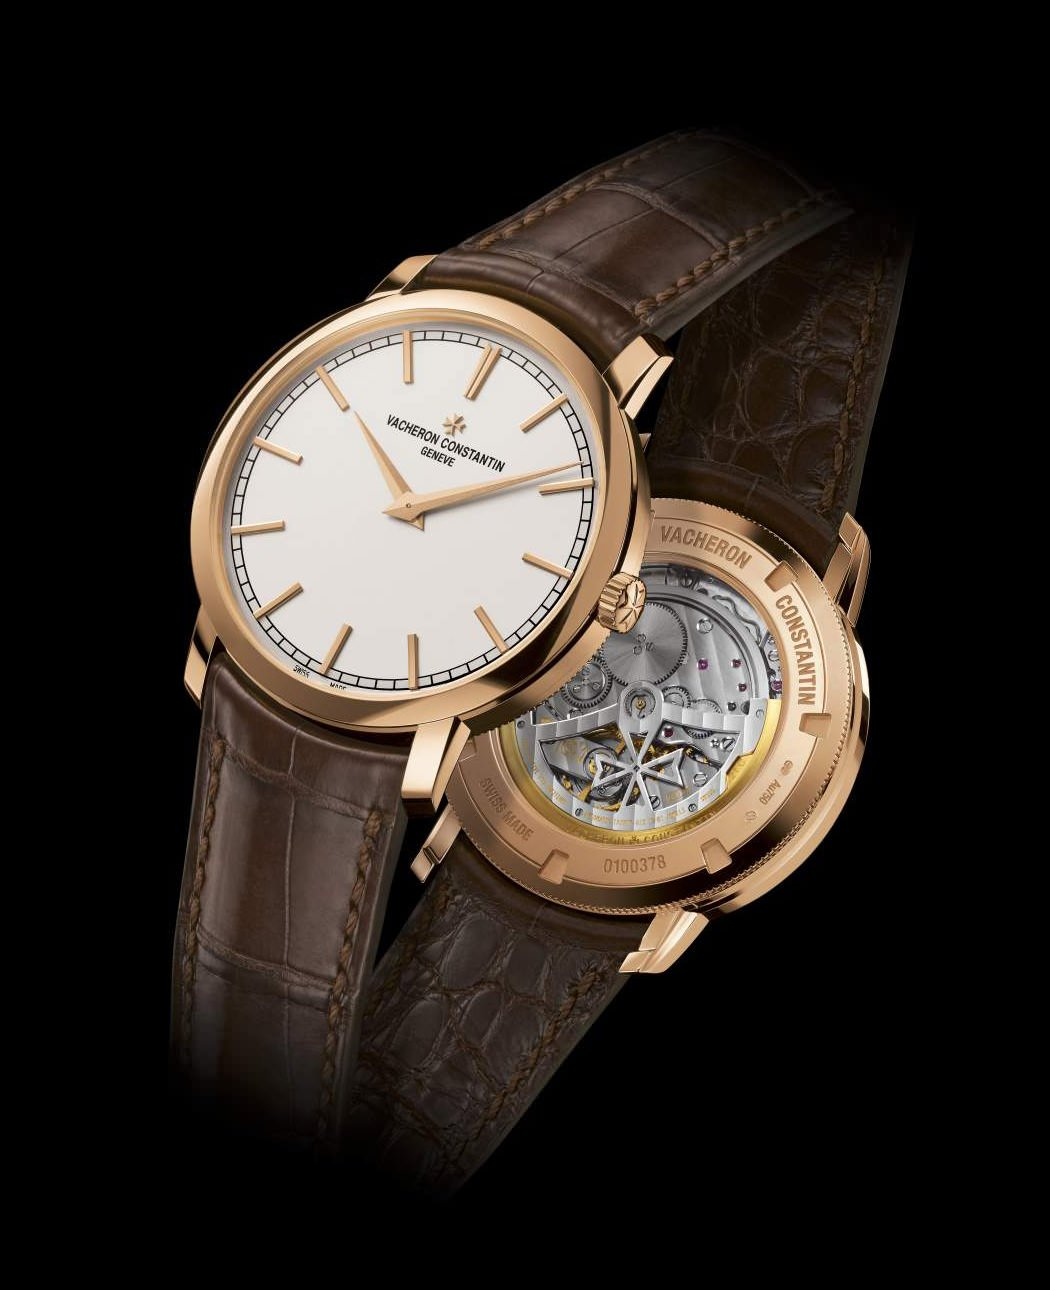 PATRIMONY TRADITIONNELLE SELF-WINDING de Vacheron Constantin